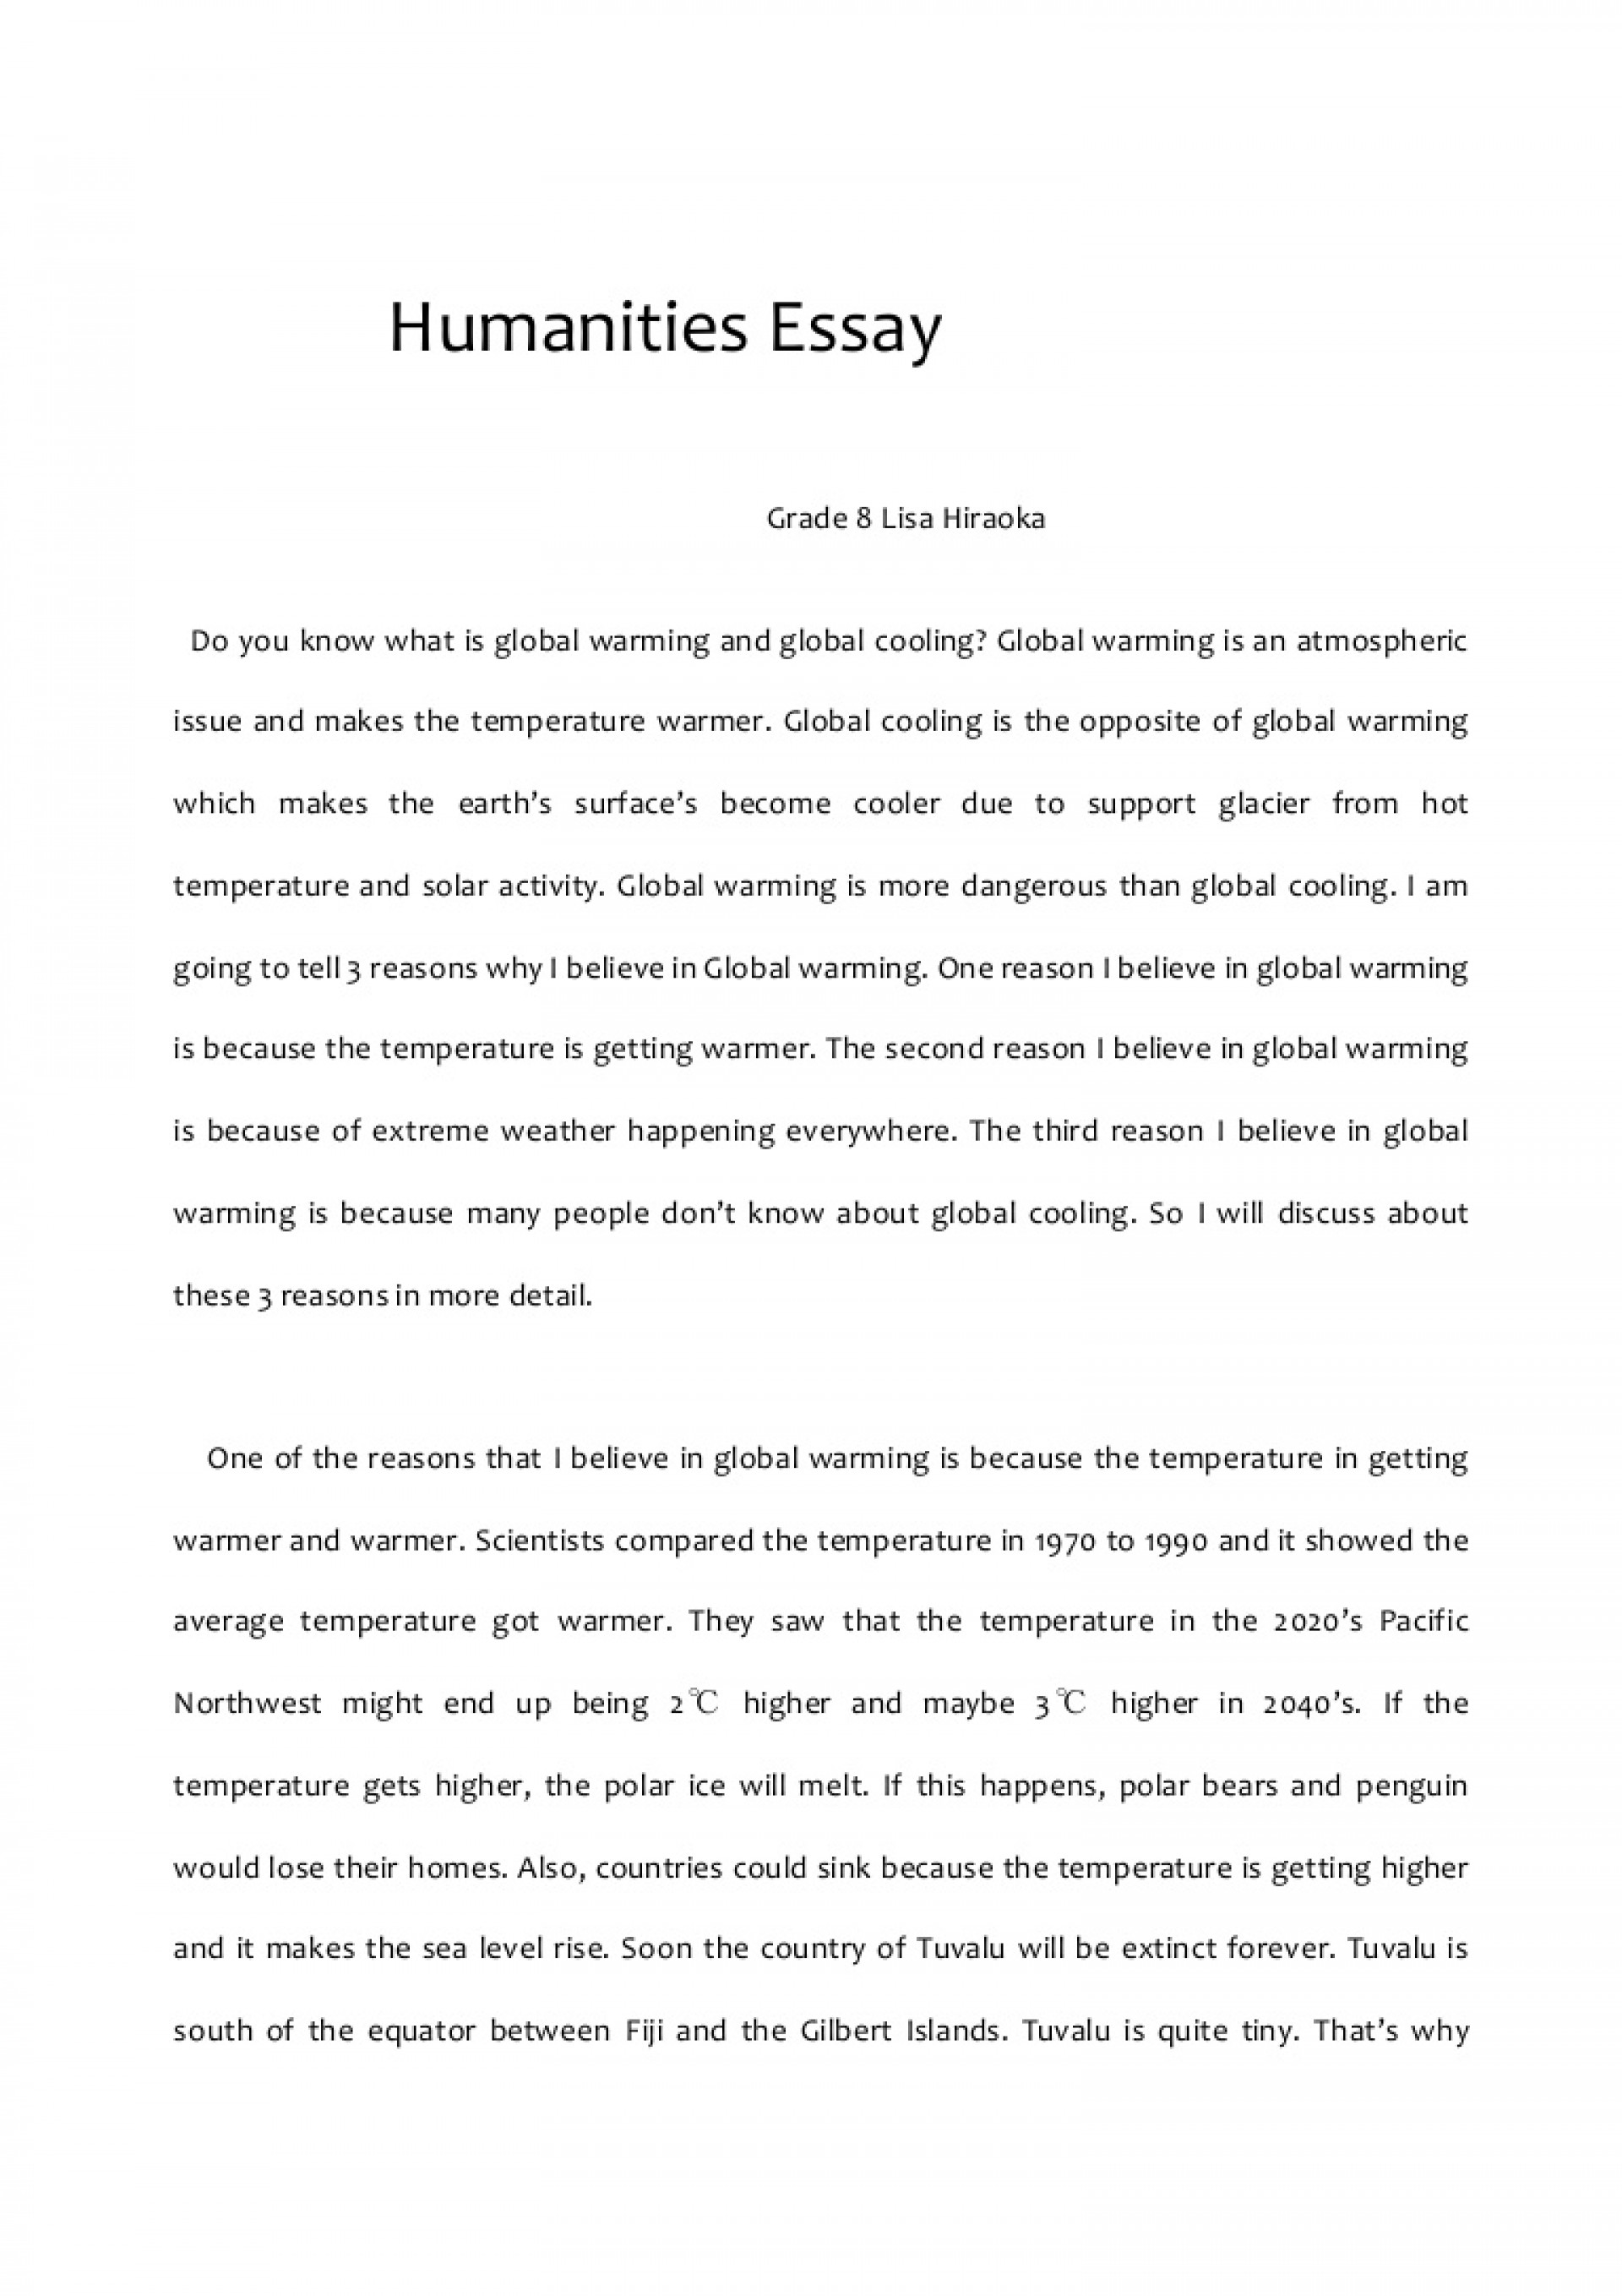 006 Global Warming Essay Humanitiesessay Phpapp02 Thumbnail Unusual Hook Conclusion Outline 1920